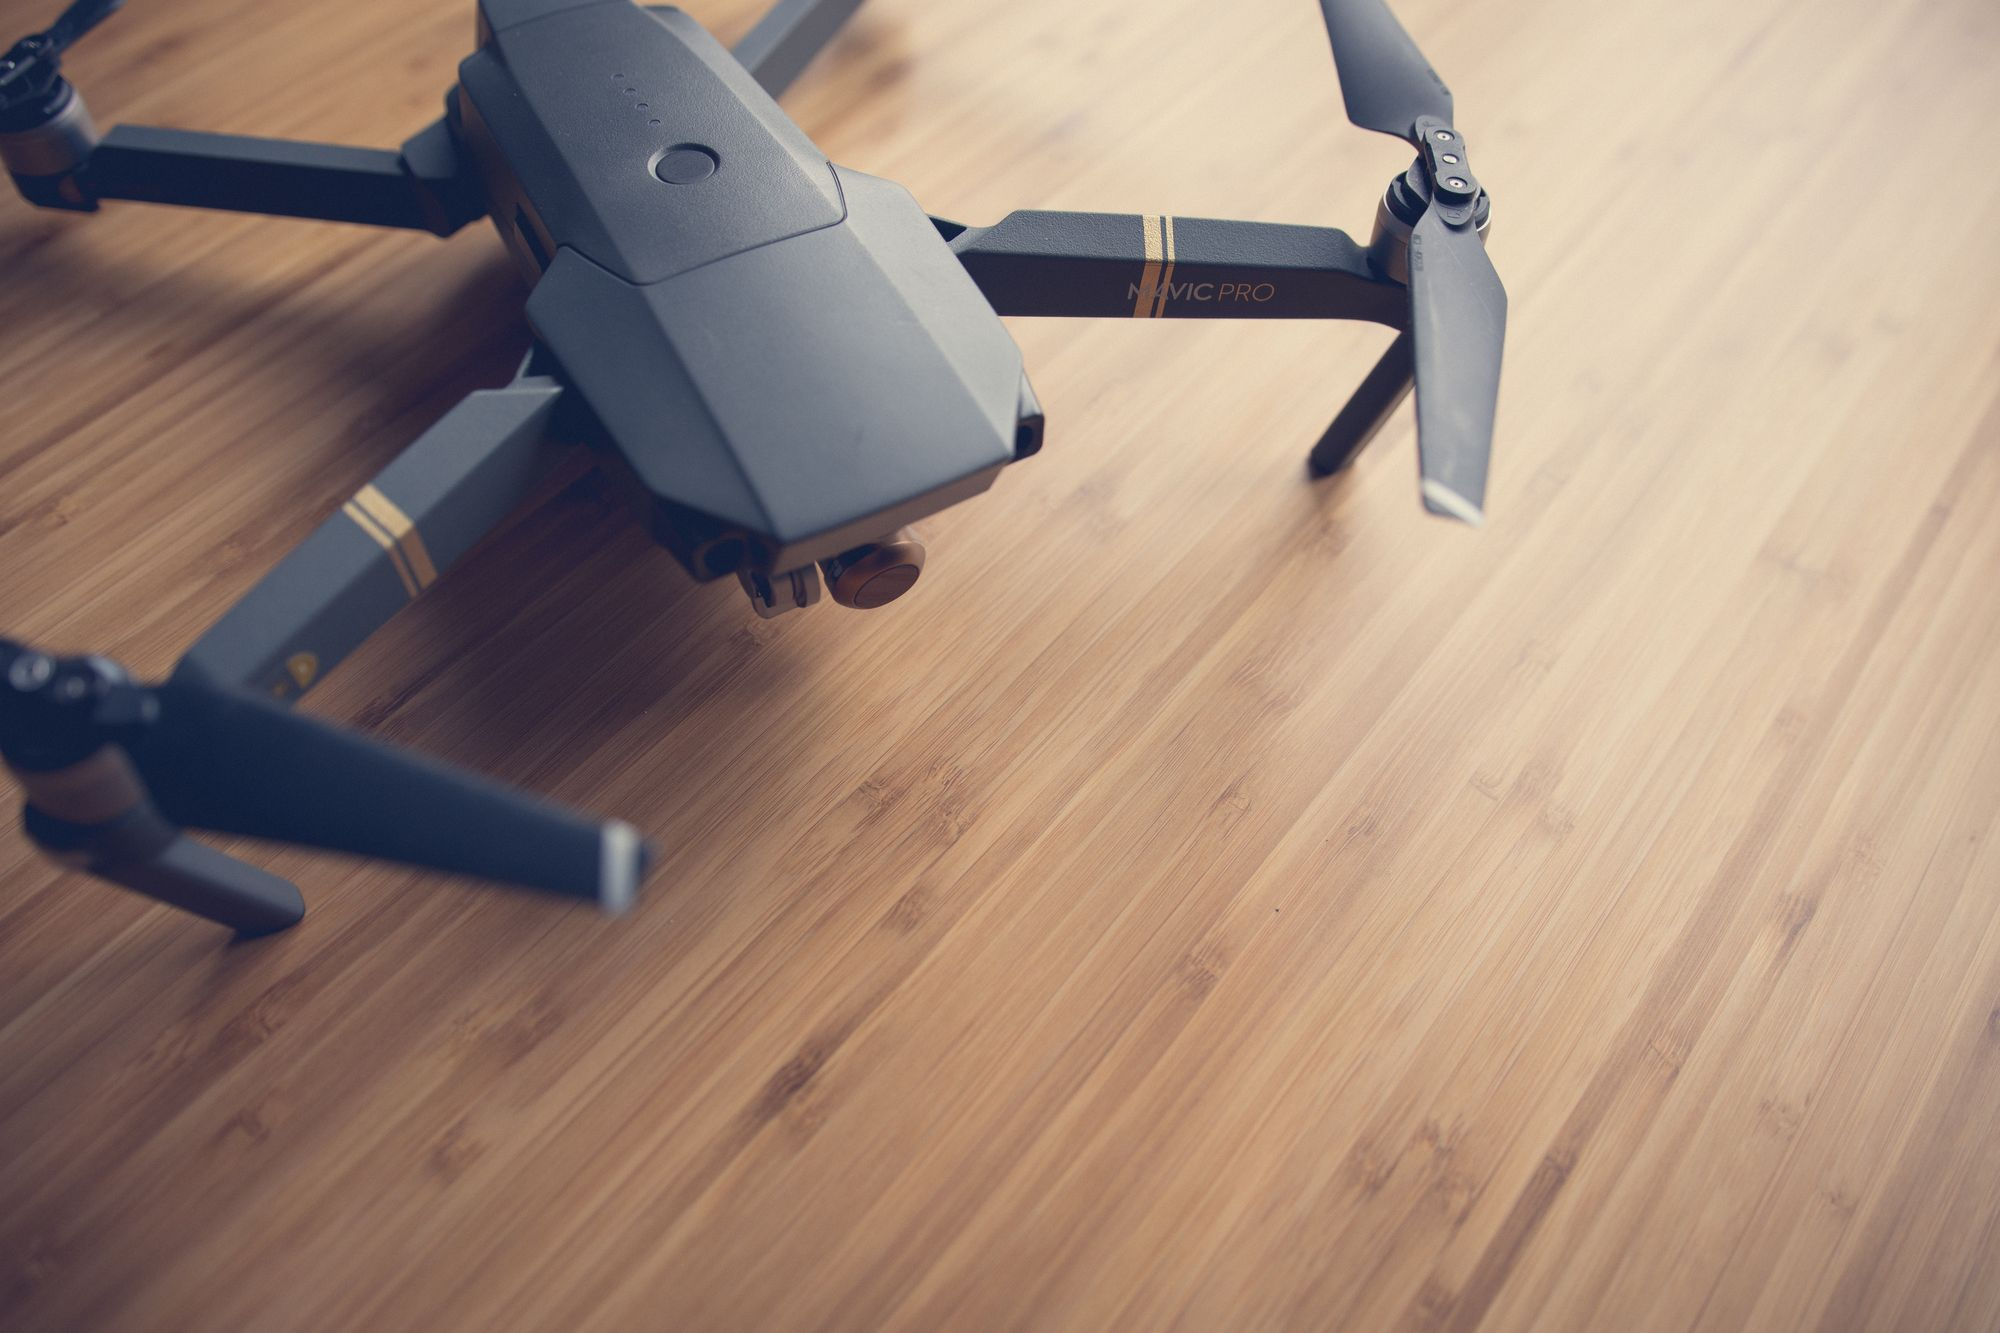 What to look out for in a drone before take-off